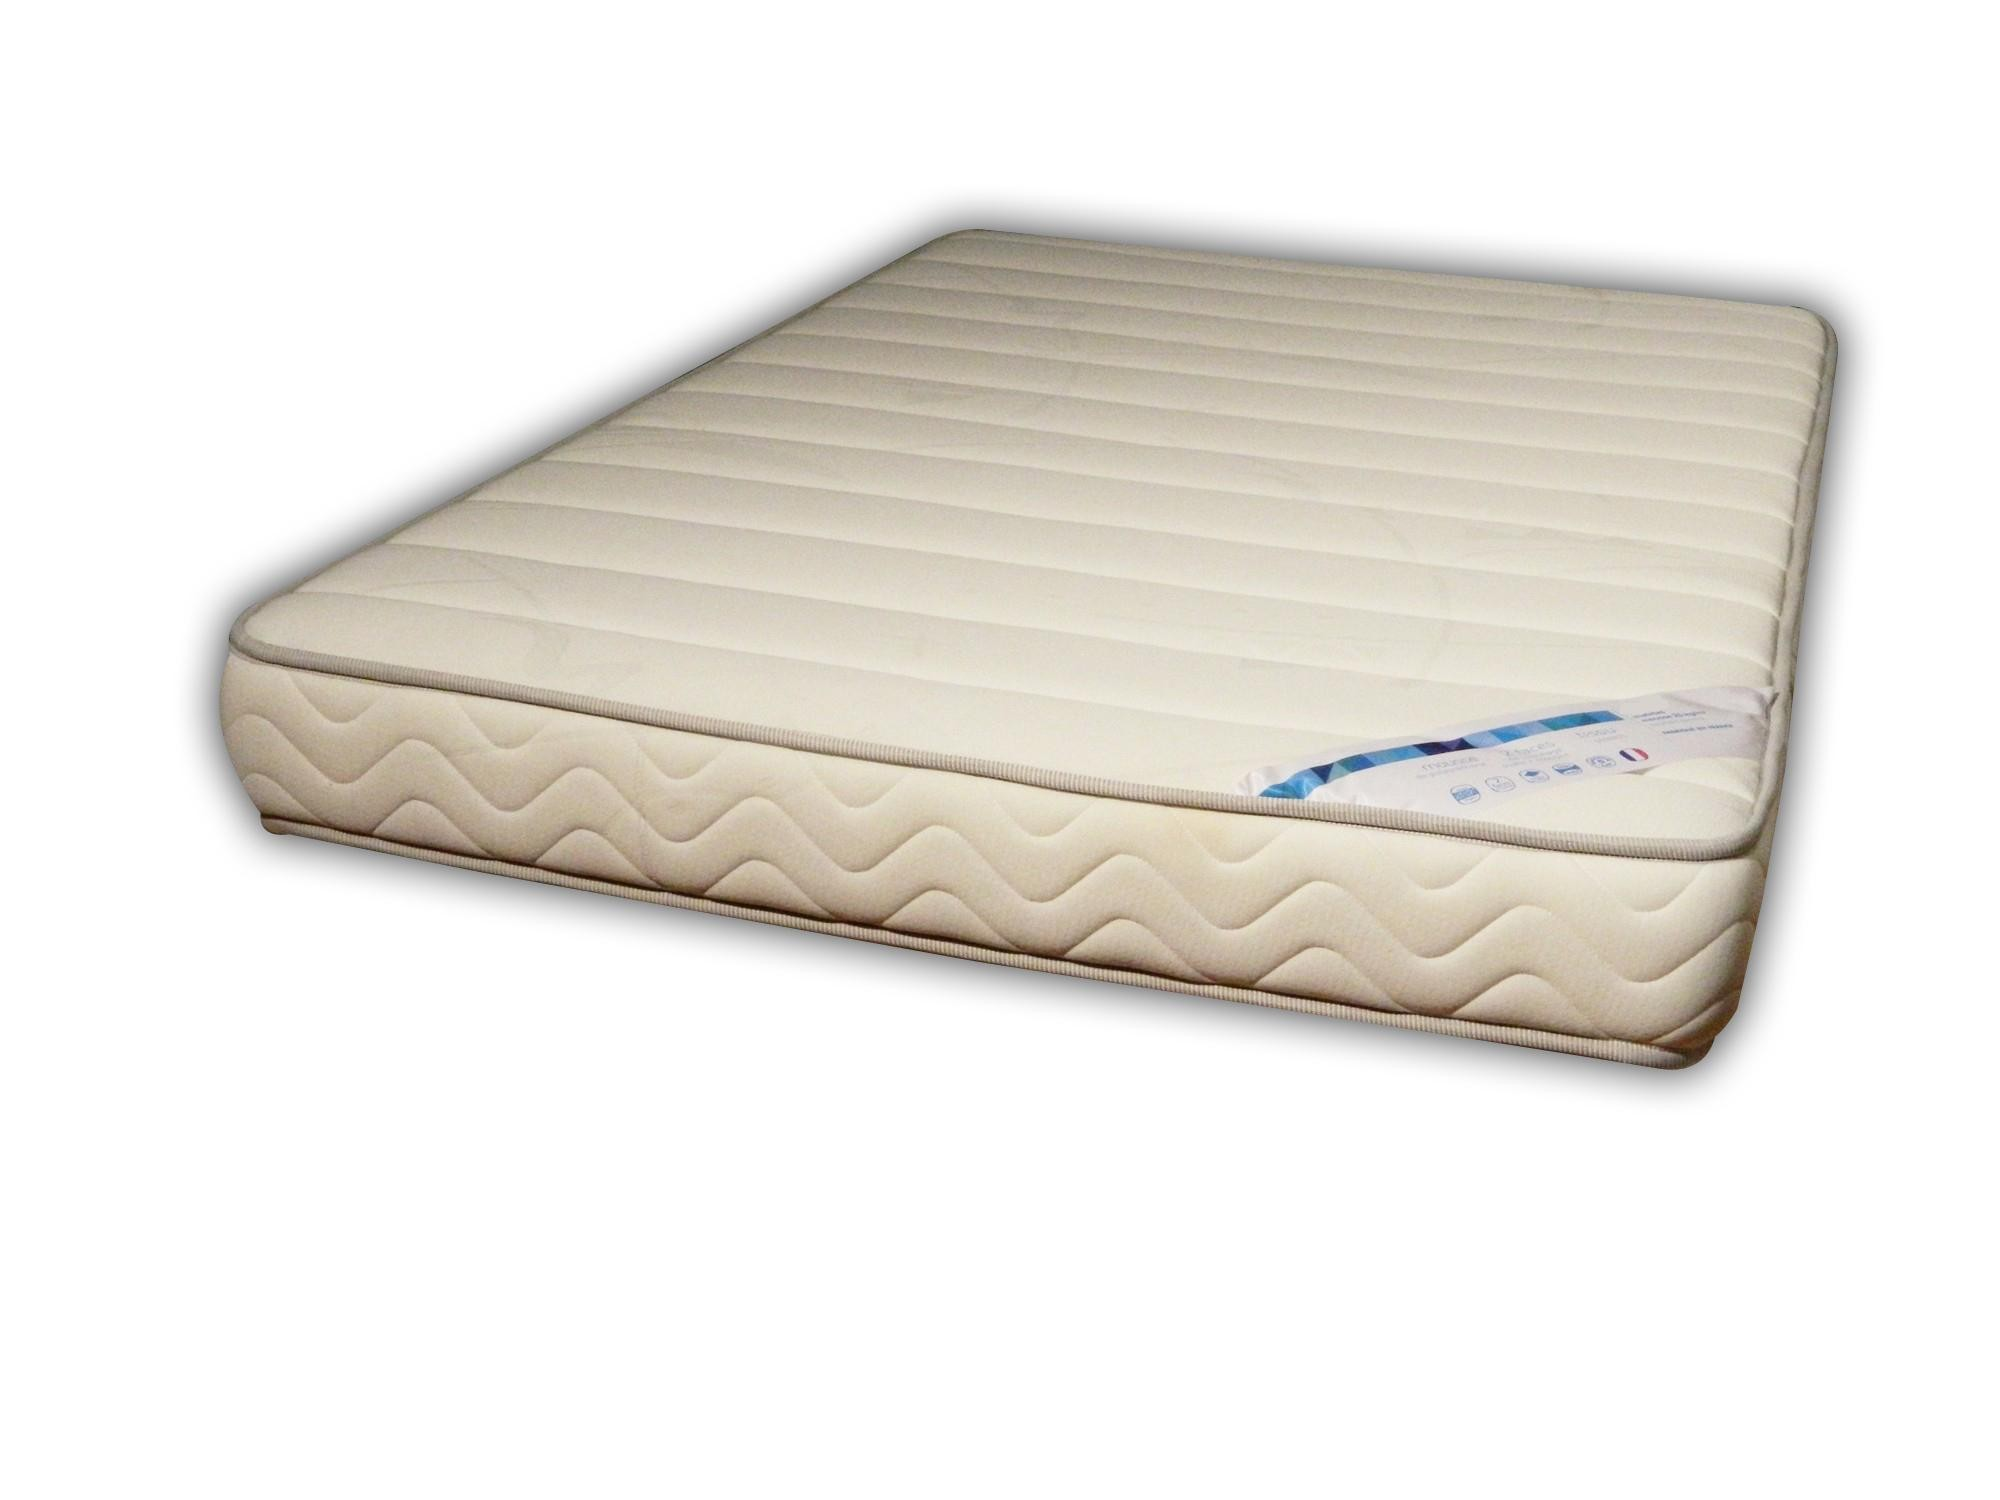 matelas 120x190 but cool matelas x marigot pls with matelas 120x190 but finest fly lit simple. Black Bedroom Furniture Sets. Home Design Ideas